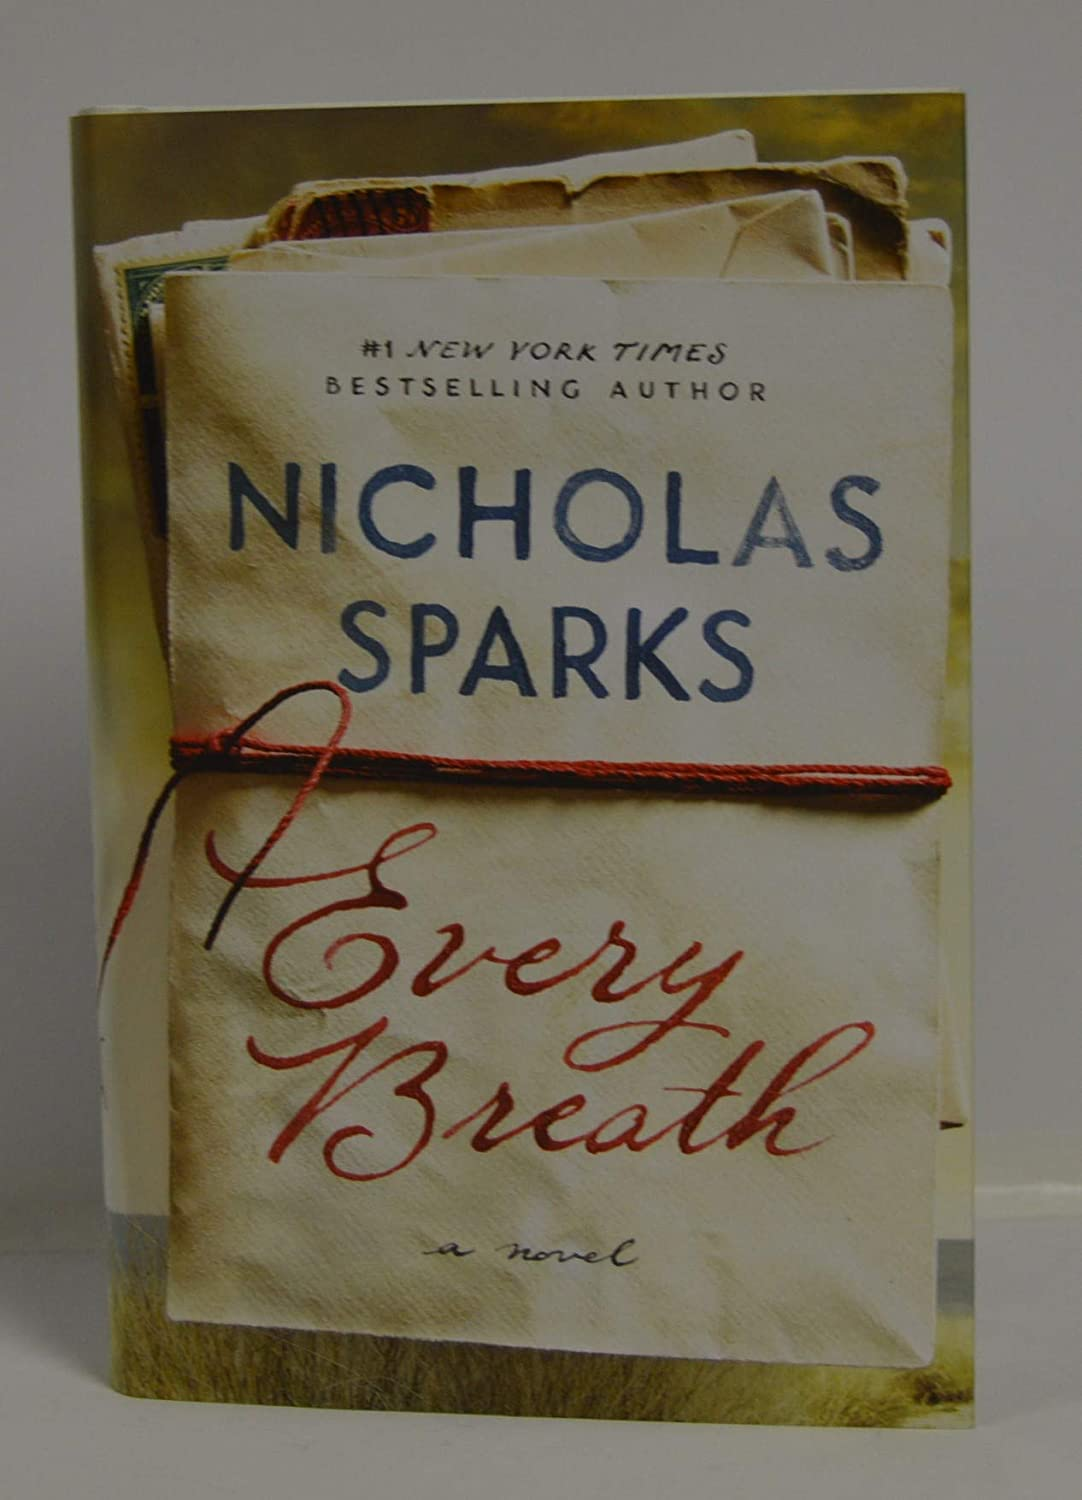 NICHOLAS SPARKS signed 'Every Breath' (Hardcover) Book FIRST EDITION/FIRST PRINTING